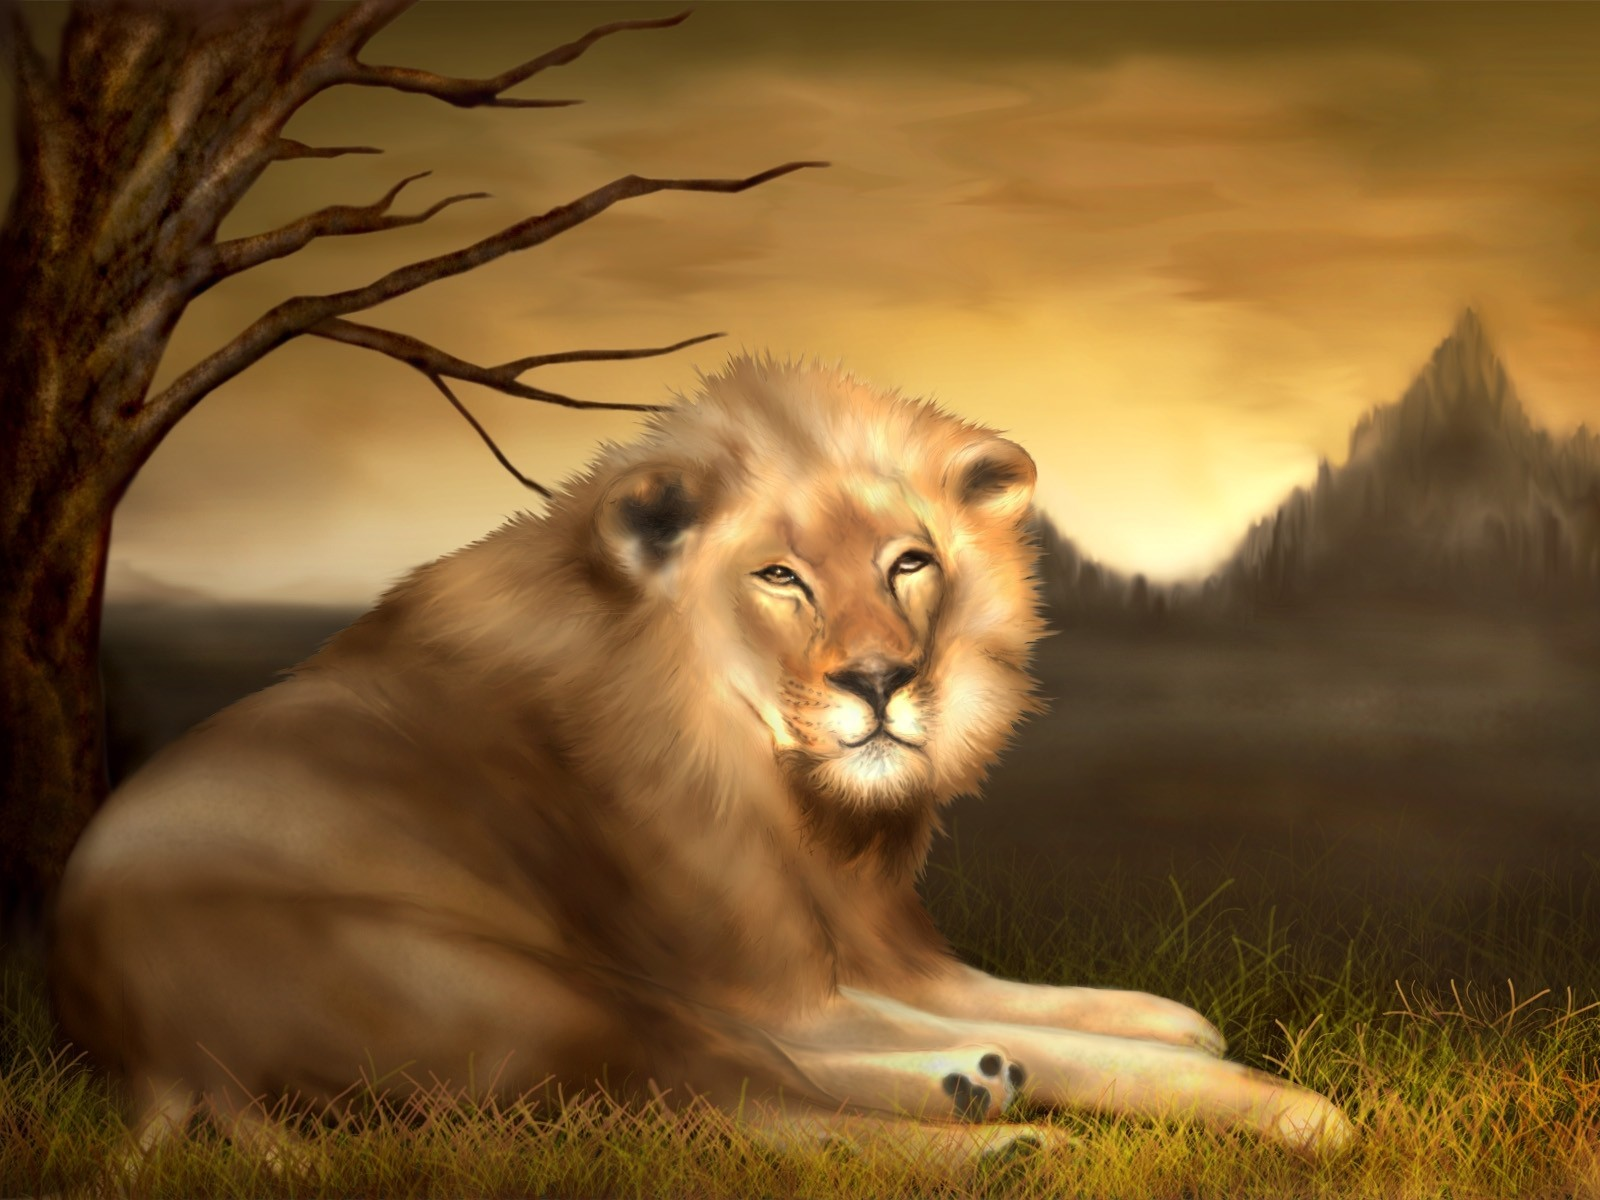 Animals Lions blurred airbrushed HD Wallpaper